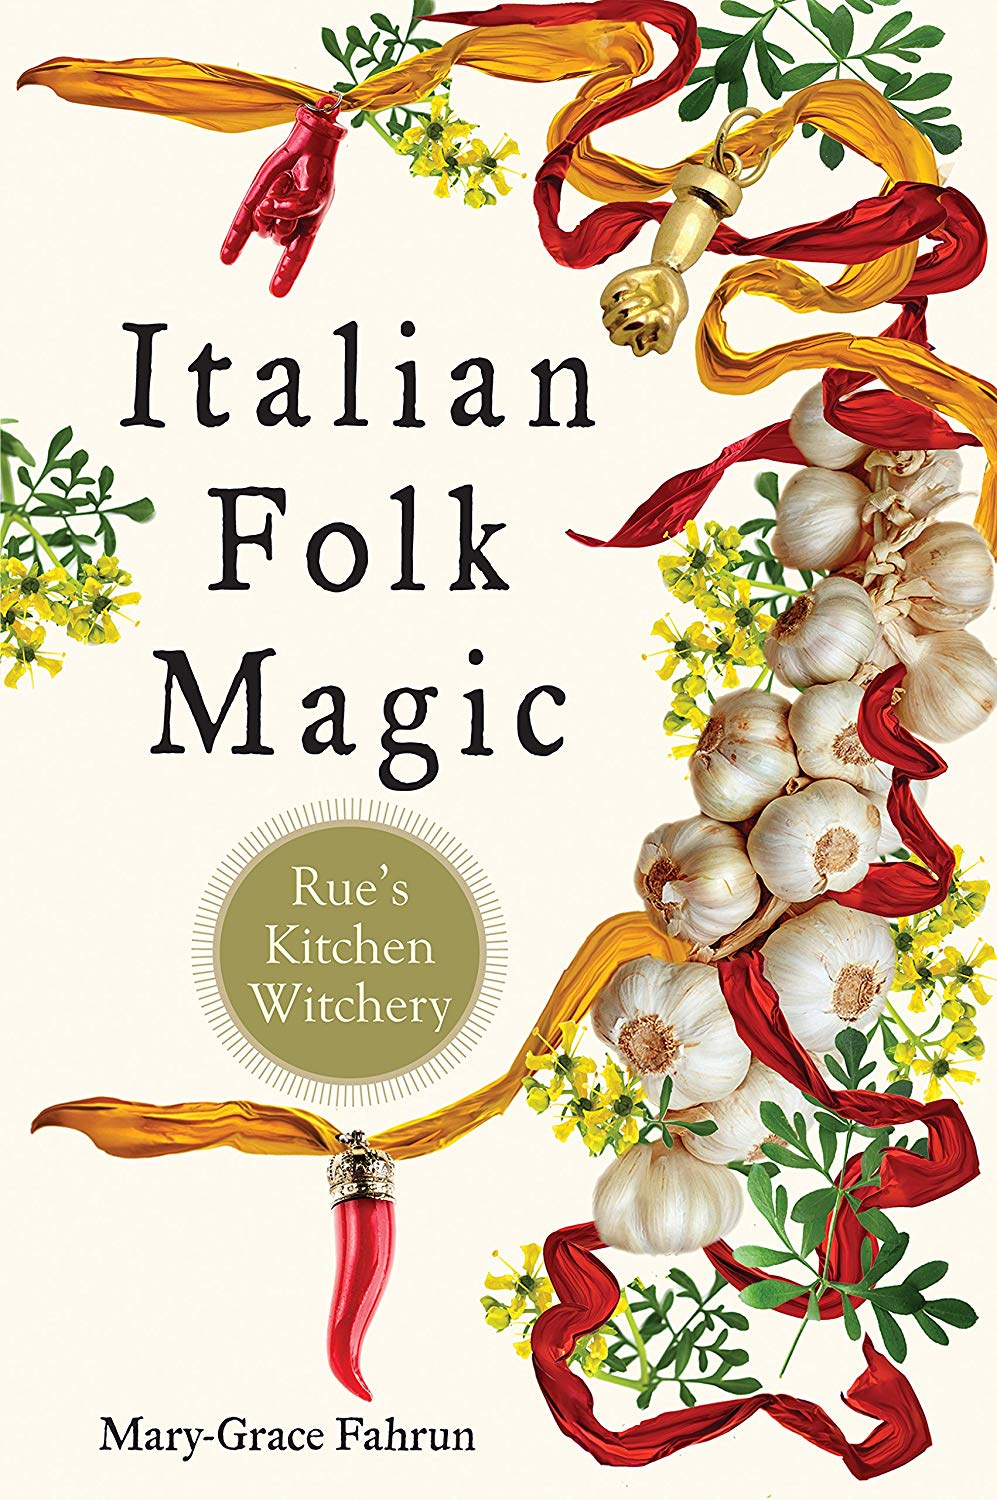 Italian Folk Magic (Mary-Grace Fahrun)